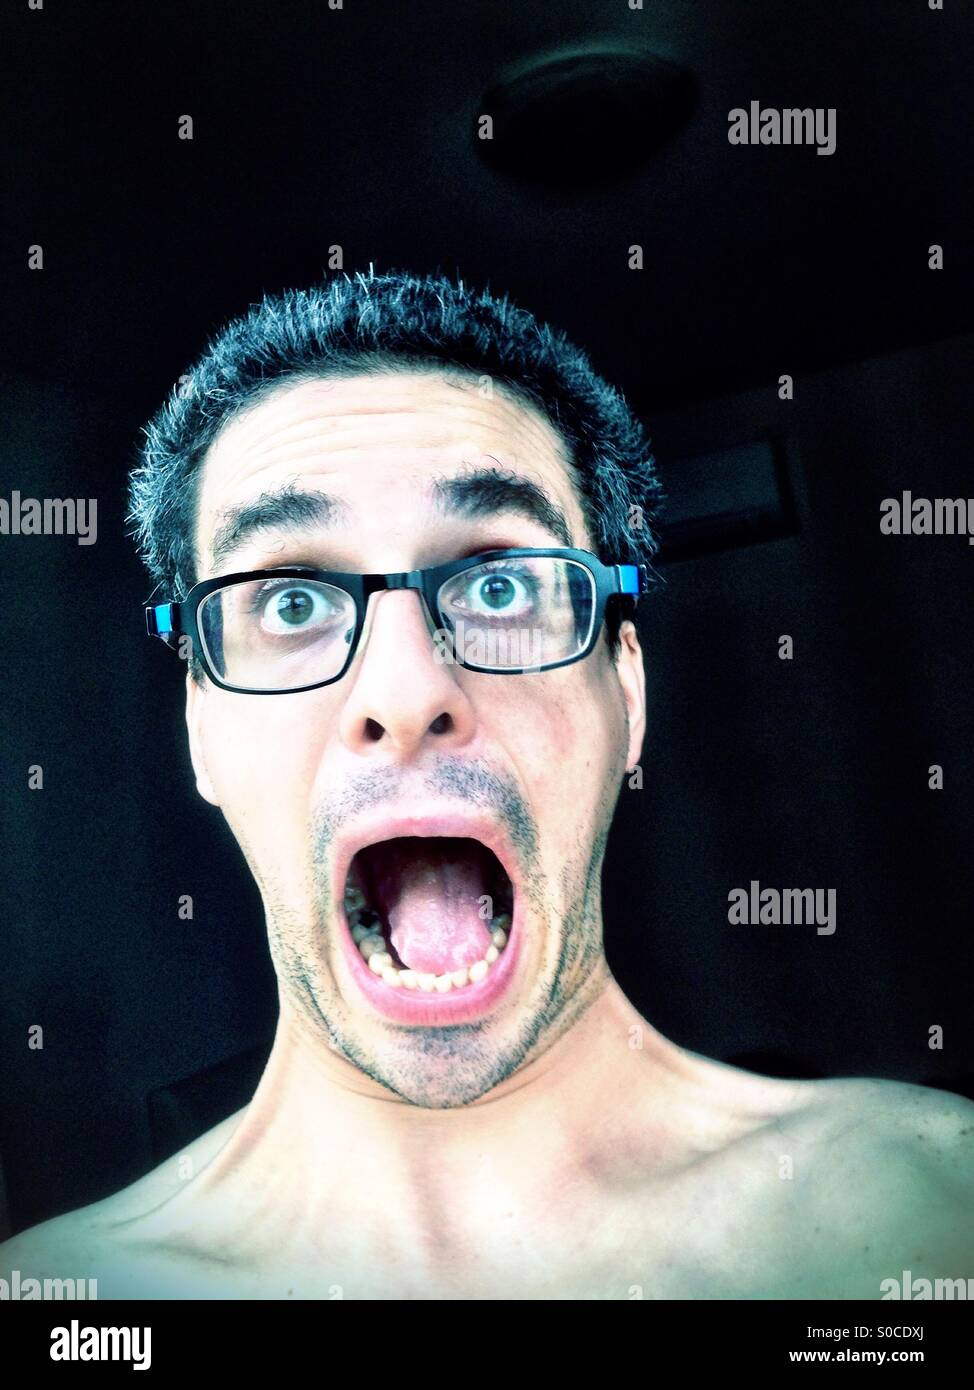 Scared face - Stock Image